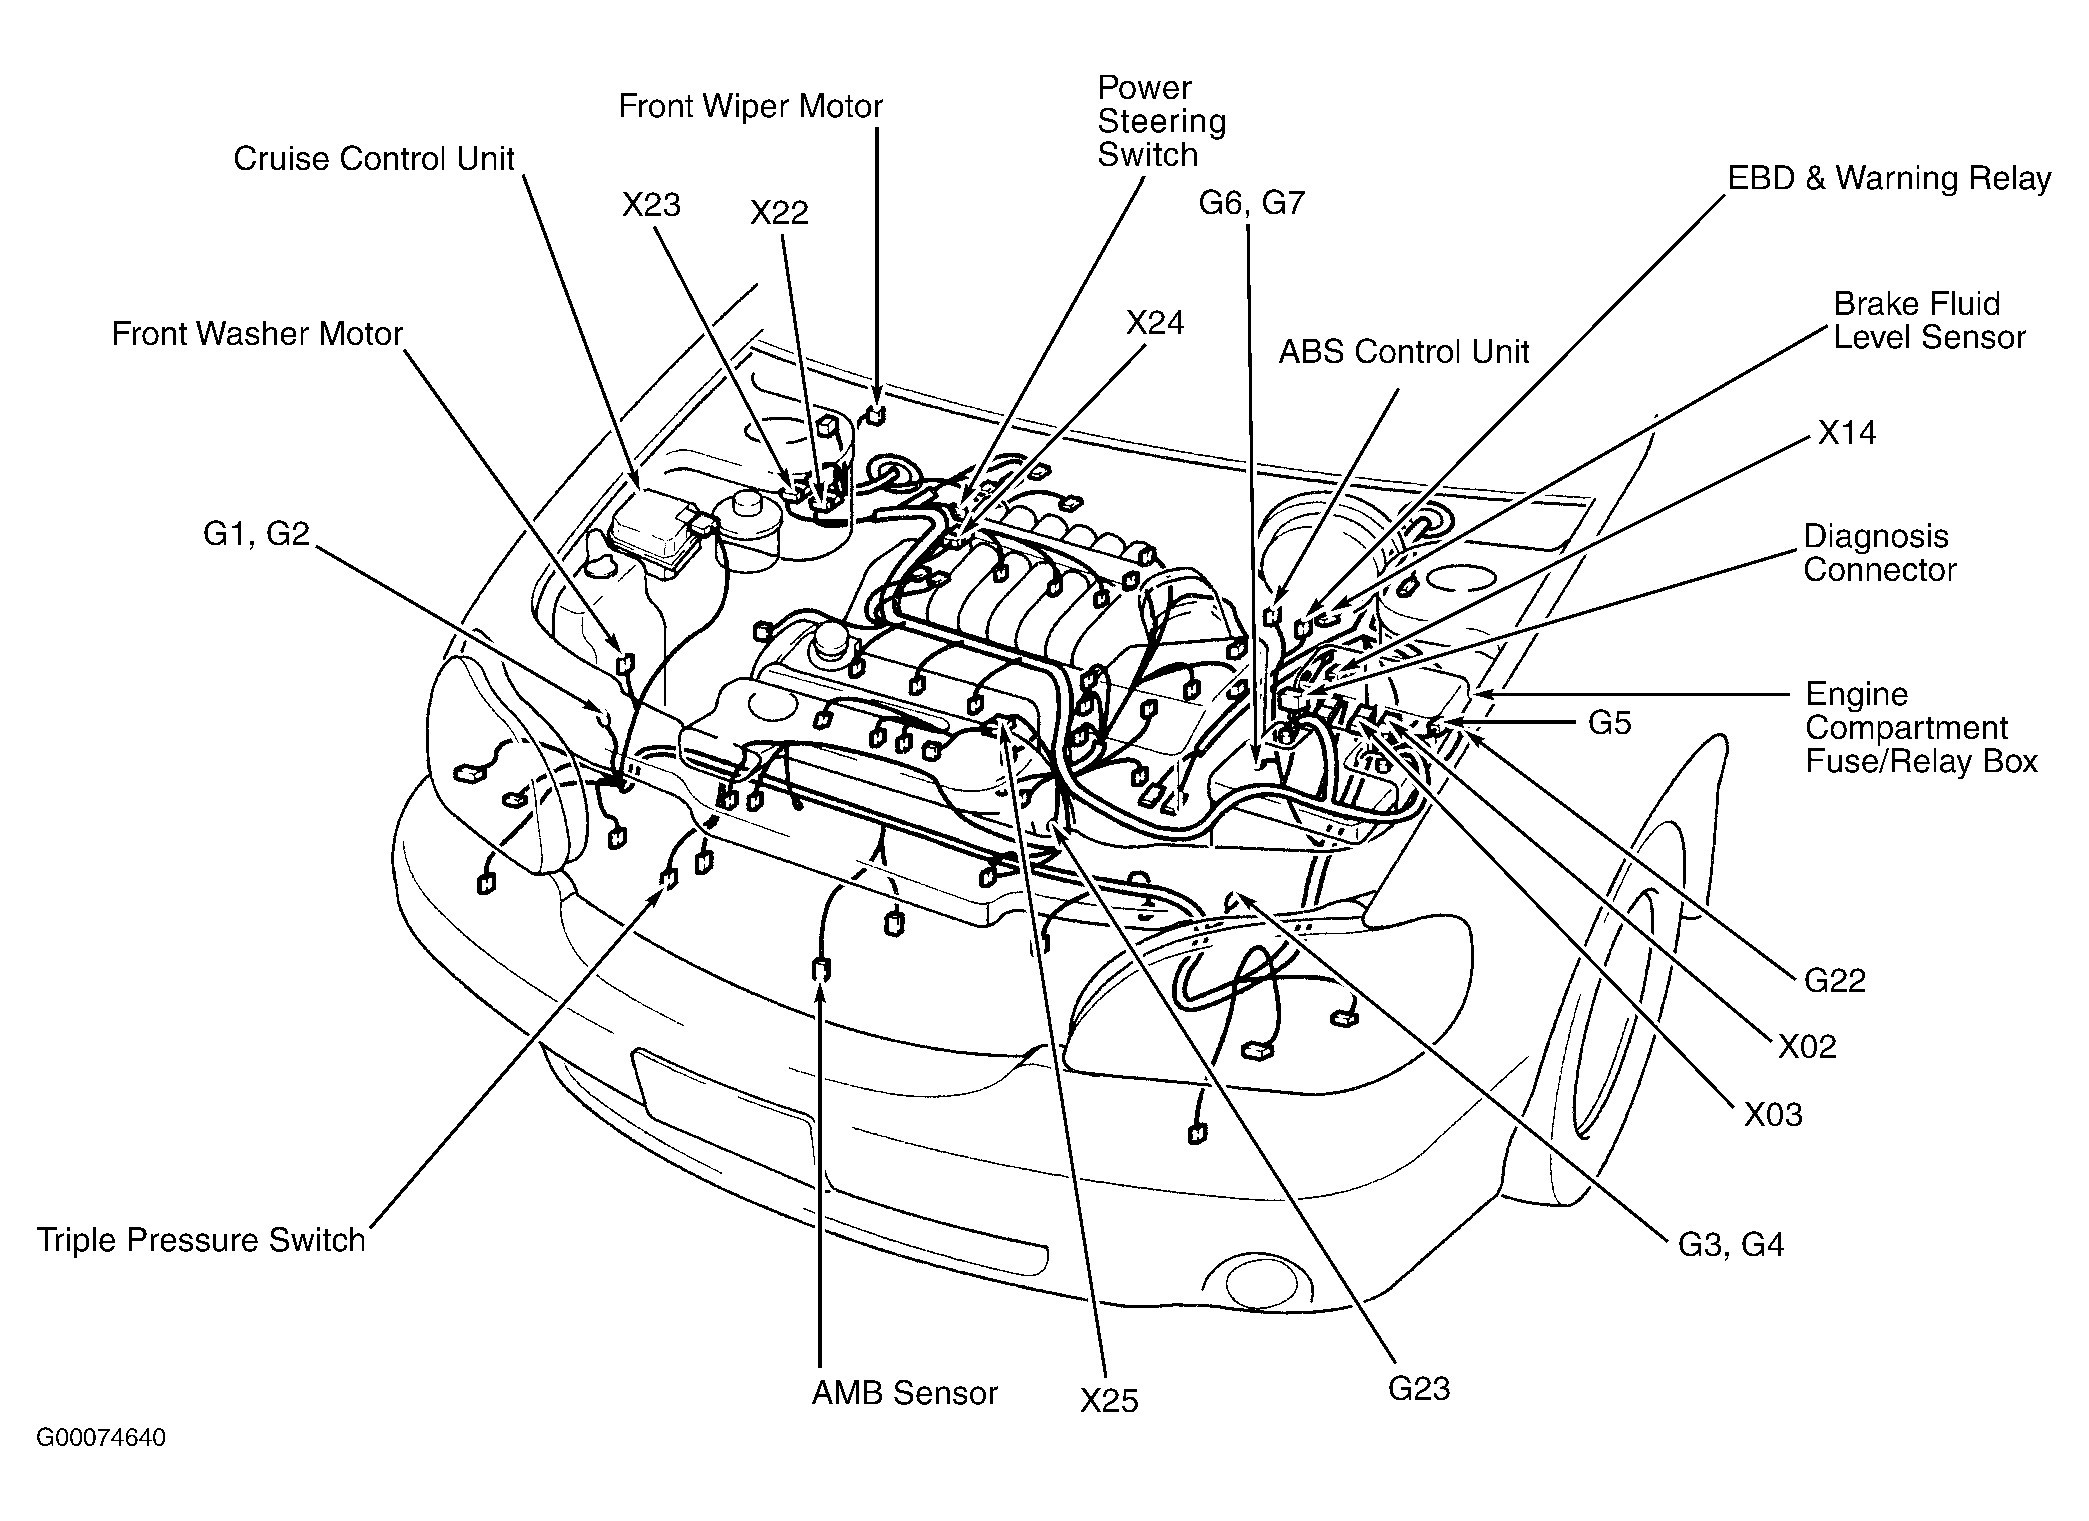 2004 kia rio engine diagram wiring diagram descriptionhose diagram likewise 2004 kia rio on kia sorento thermostat 2004 kia rio engine diagram